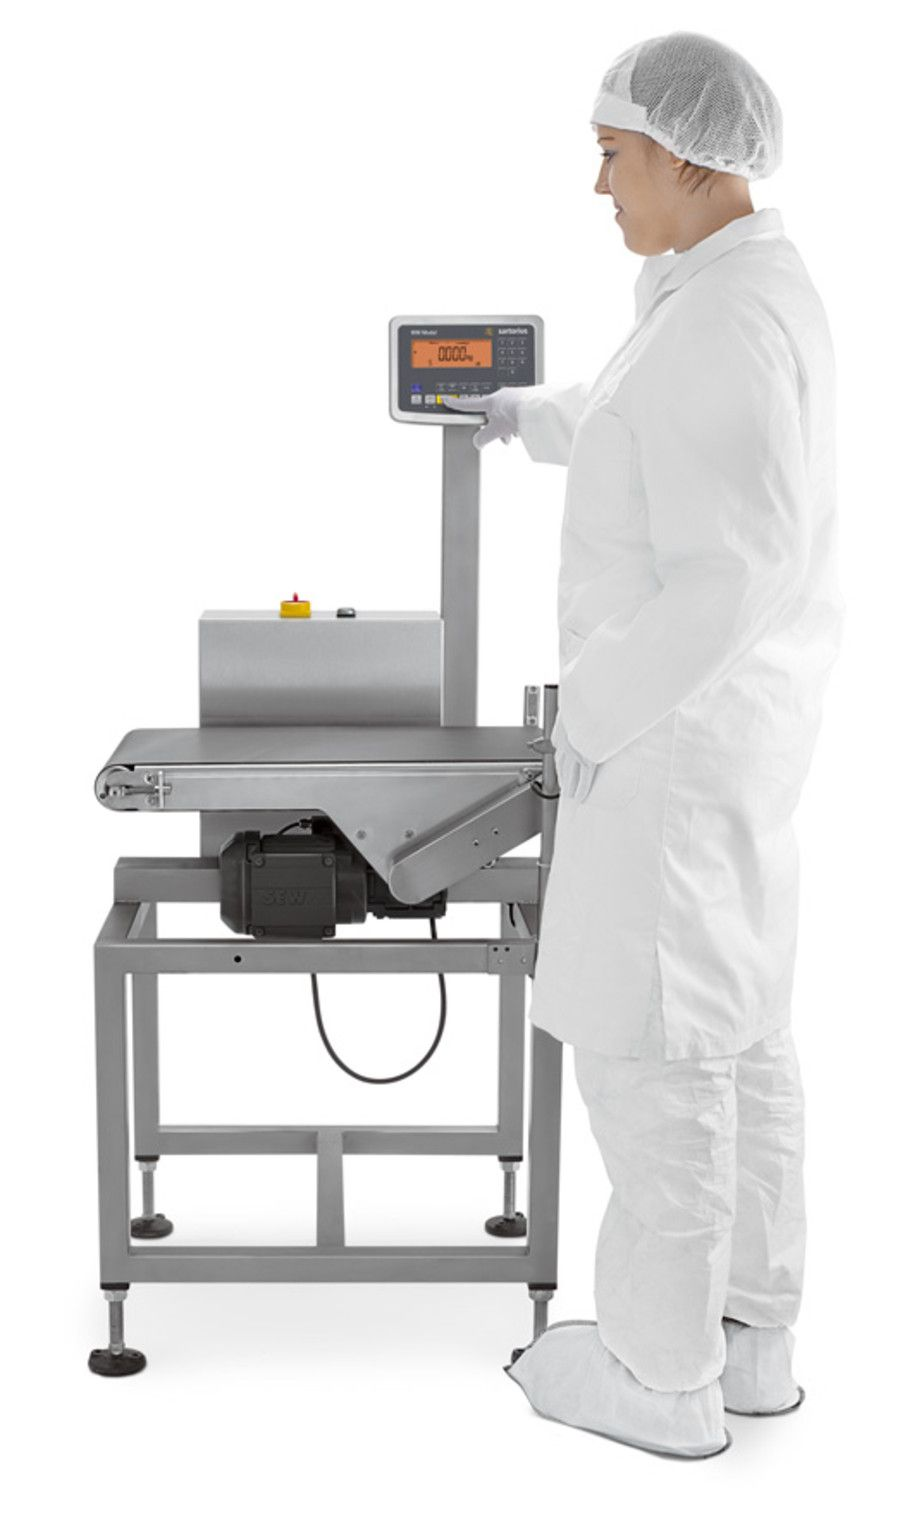 Checkweigher WM is ideal for weighing in motion to check